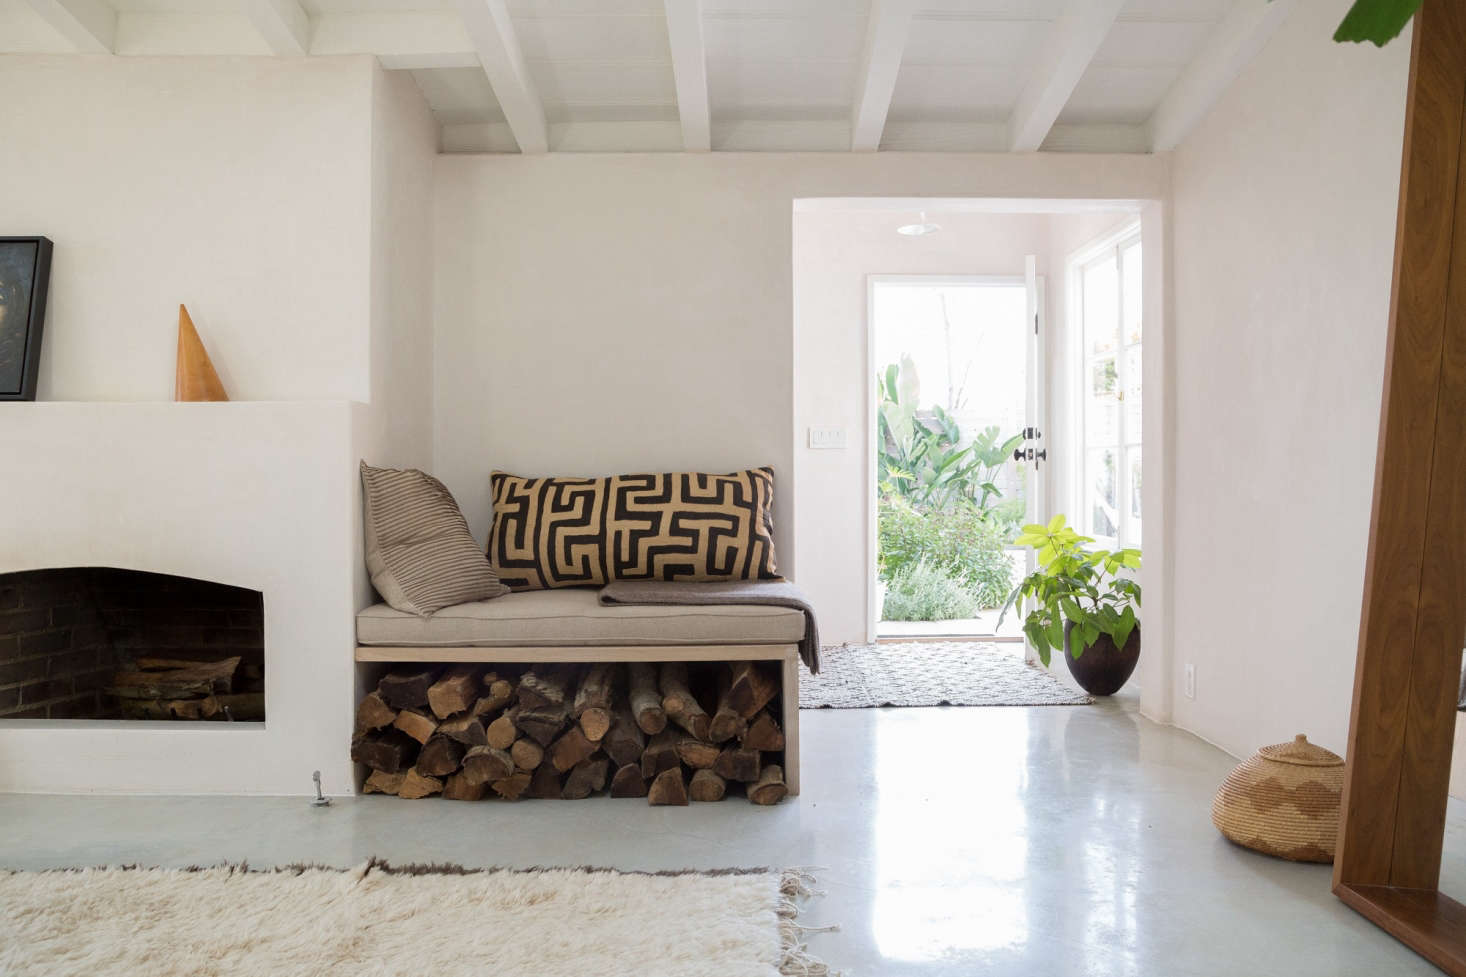 Golubovic updated the brick fireplace by creating a concrete front and then adding plaster over the top. A built-in bench alongside doubles as log storage.